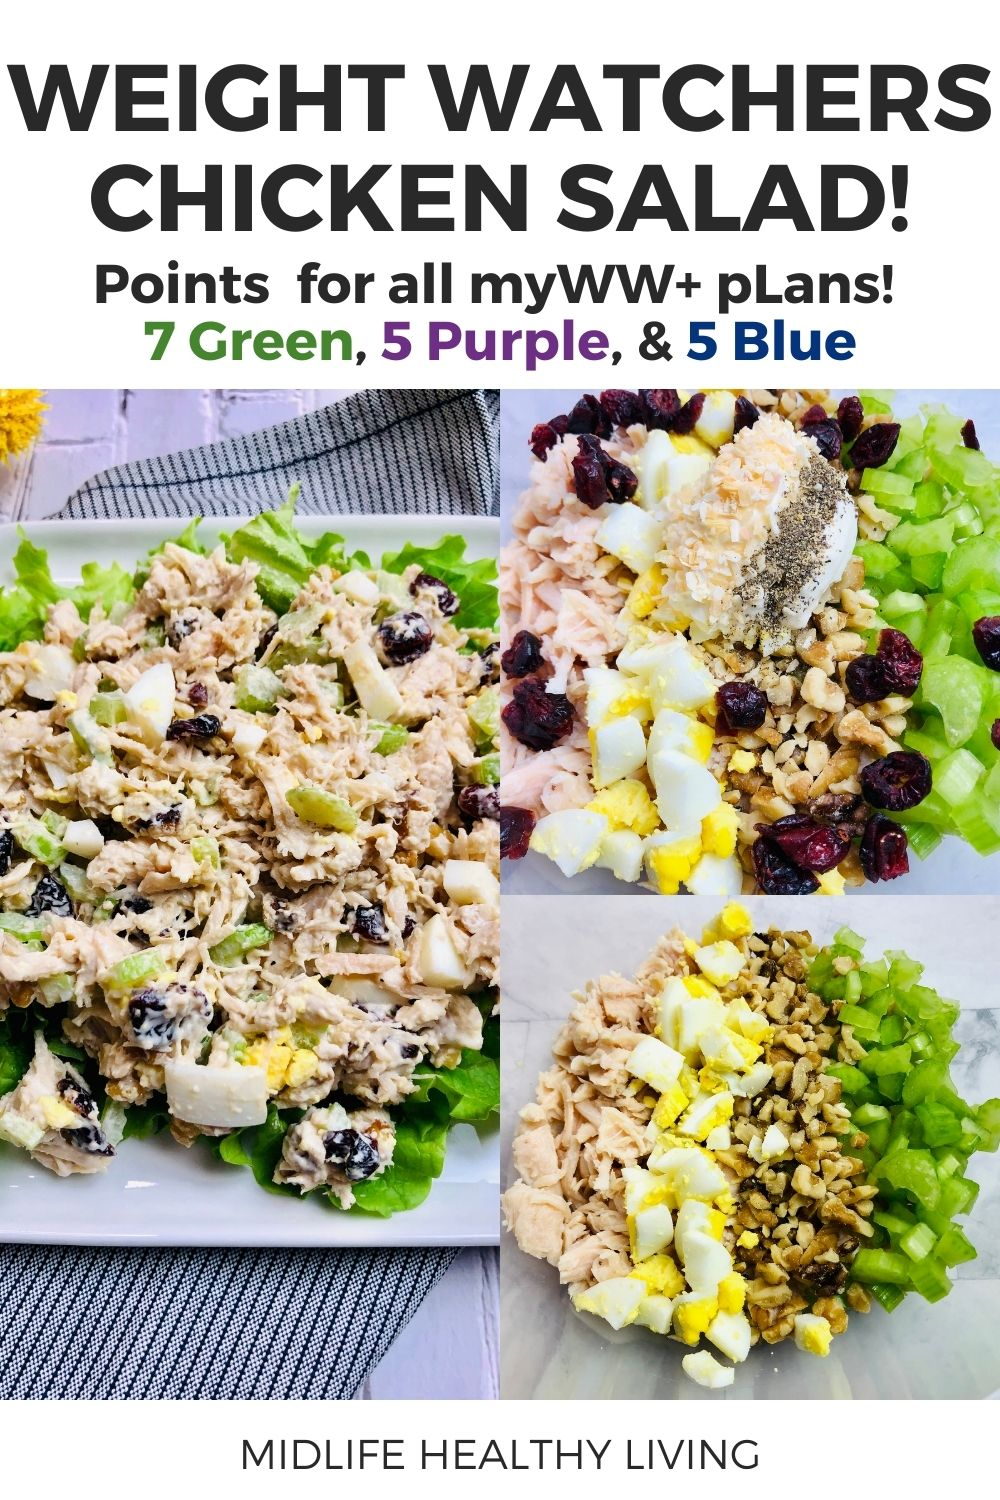 Pin showing the points and title at the top and the finished weight watchers chicken salad on a plate ready to eat.